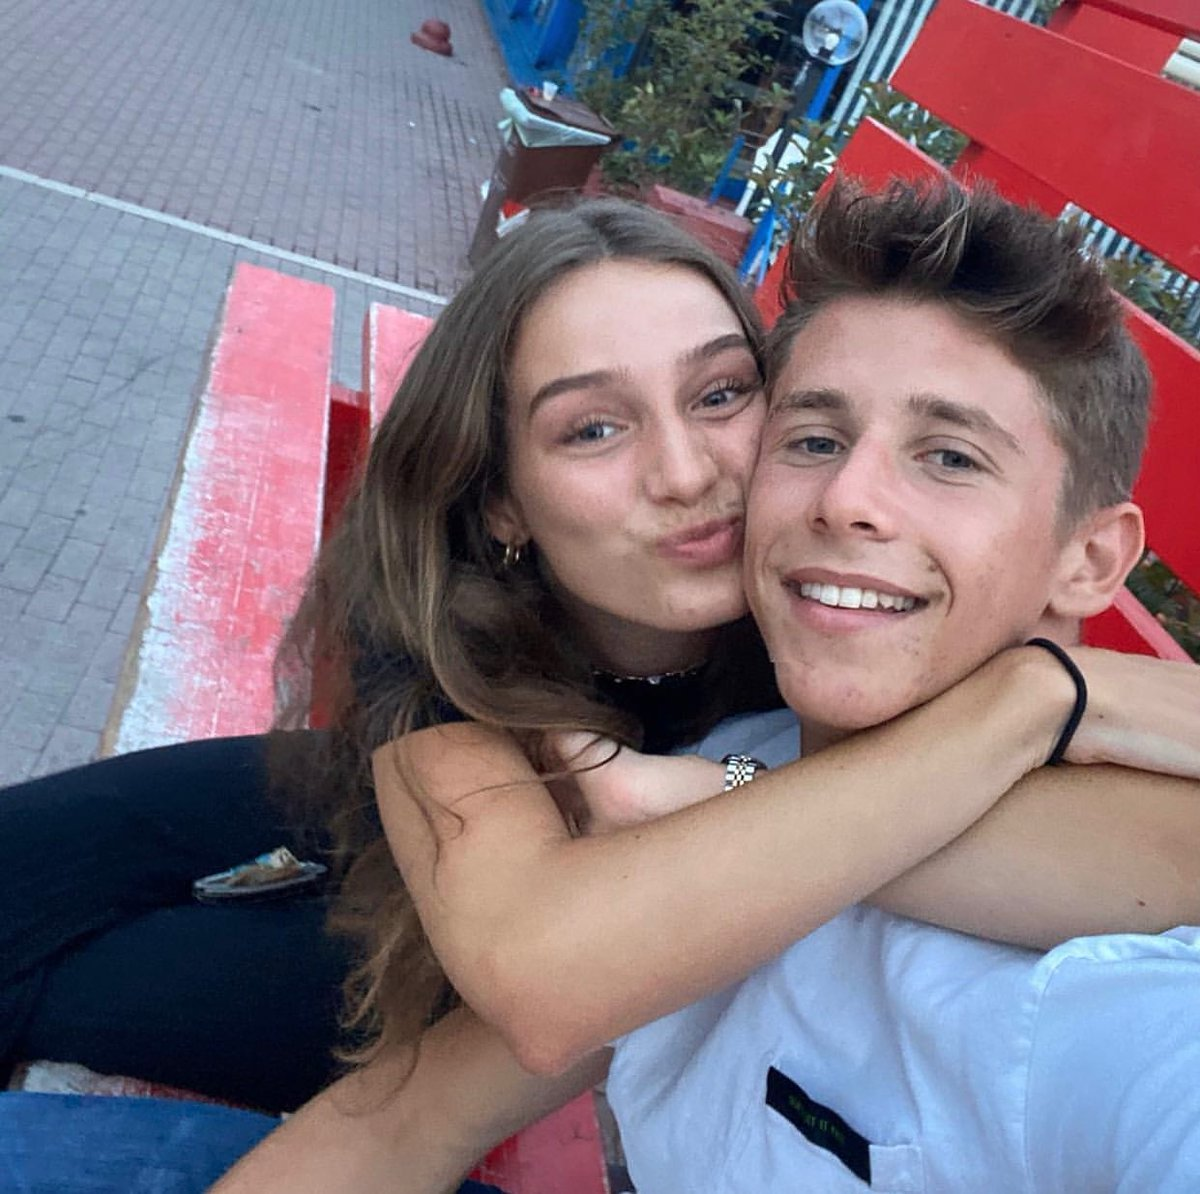 Cuties🥰  @arthur_leclerc7 and his girlfriend, Carla❤  #ArthurLeclerc #F3 #PremaRacing #RoadToF1 #FerrariDriverAcademy #FDA #EssereFerrari🔴